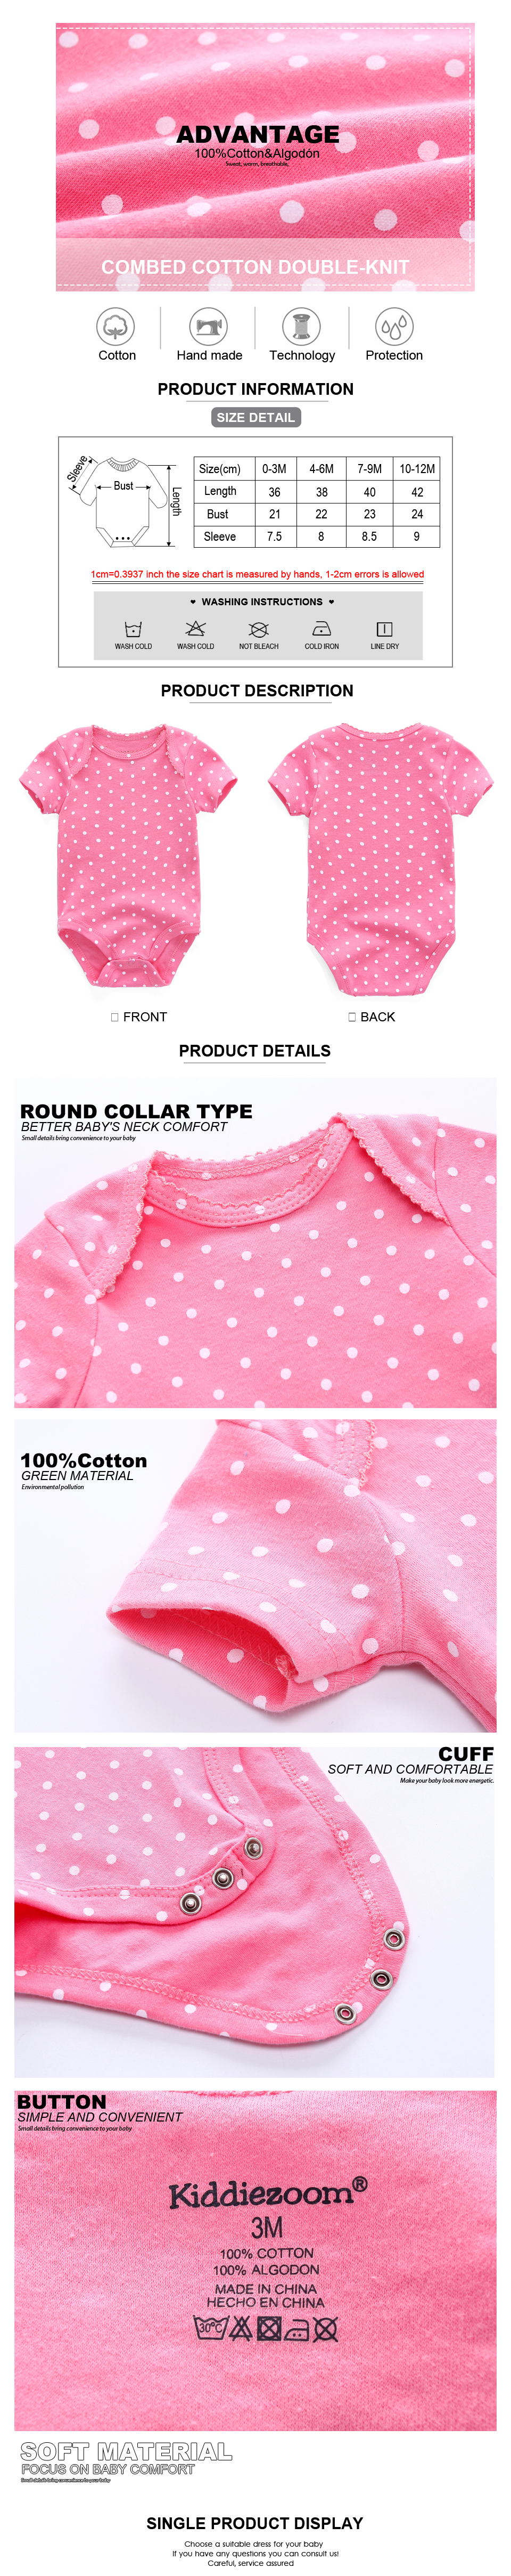 HTB10iC0rqSWBuNjSsrbq6y0mVXa4 Top Quality 7PCS/LOT Baby Boys Girls Clothes 2019 Fashion Roupas de bebe Clothing Newborn rompers Overall baby girl jumpsuit